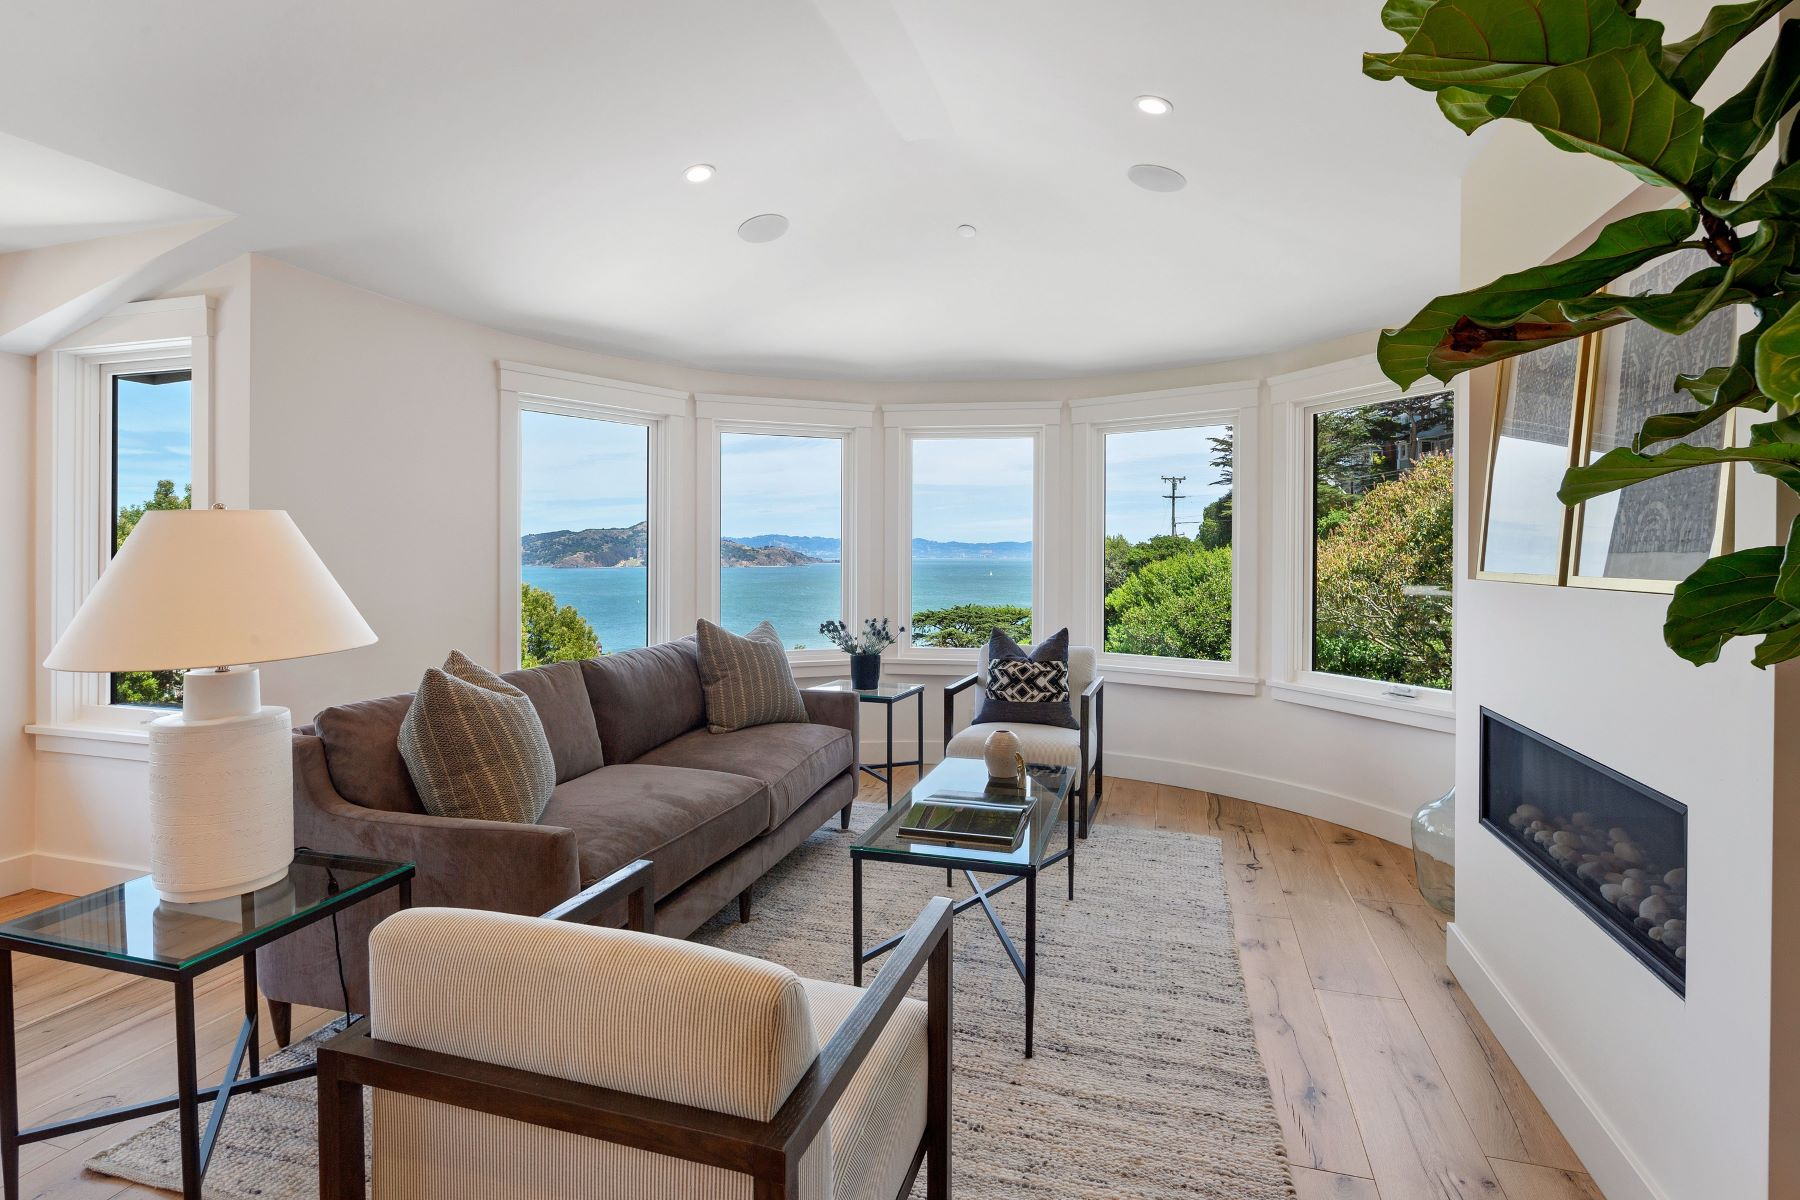 townhouses のために 売買 アット Brand New Contemporary Town Home - Ideal Location 37 Crescent Avenue, Sausalito, カリフォルニア 94965 アメリカ